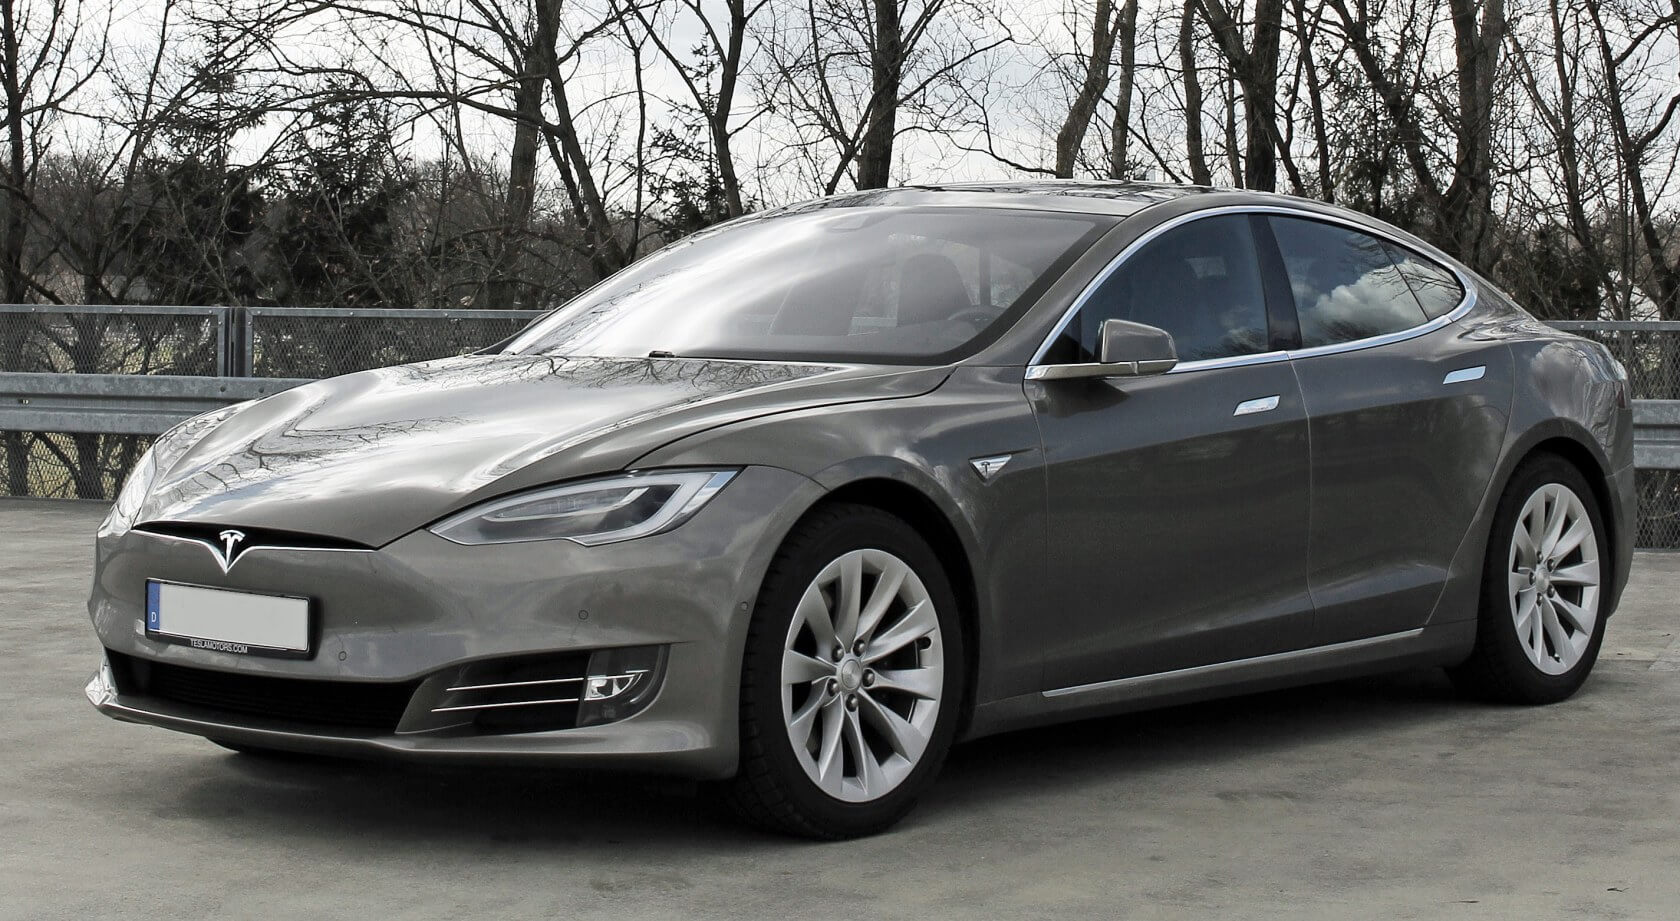 A 'refreshed' Tesla Model S may have been spotted in the wild